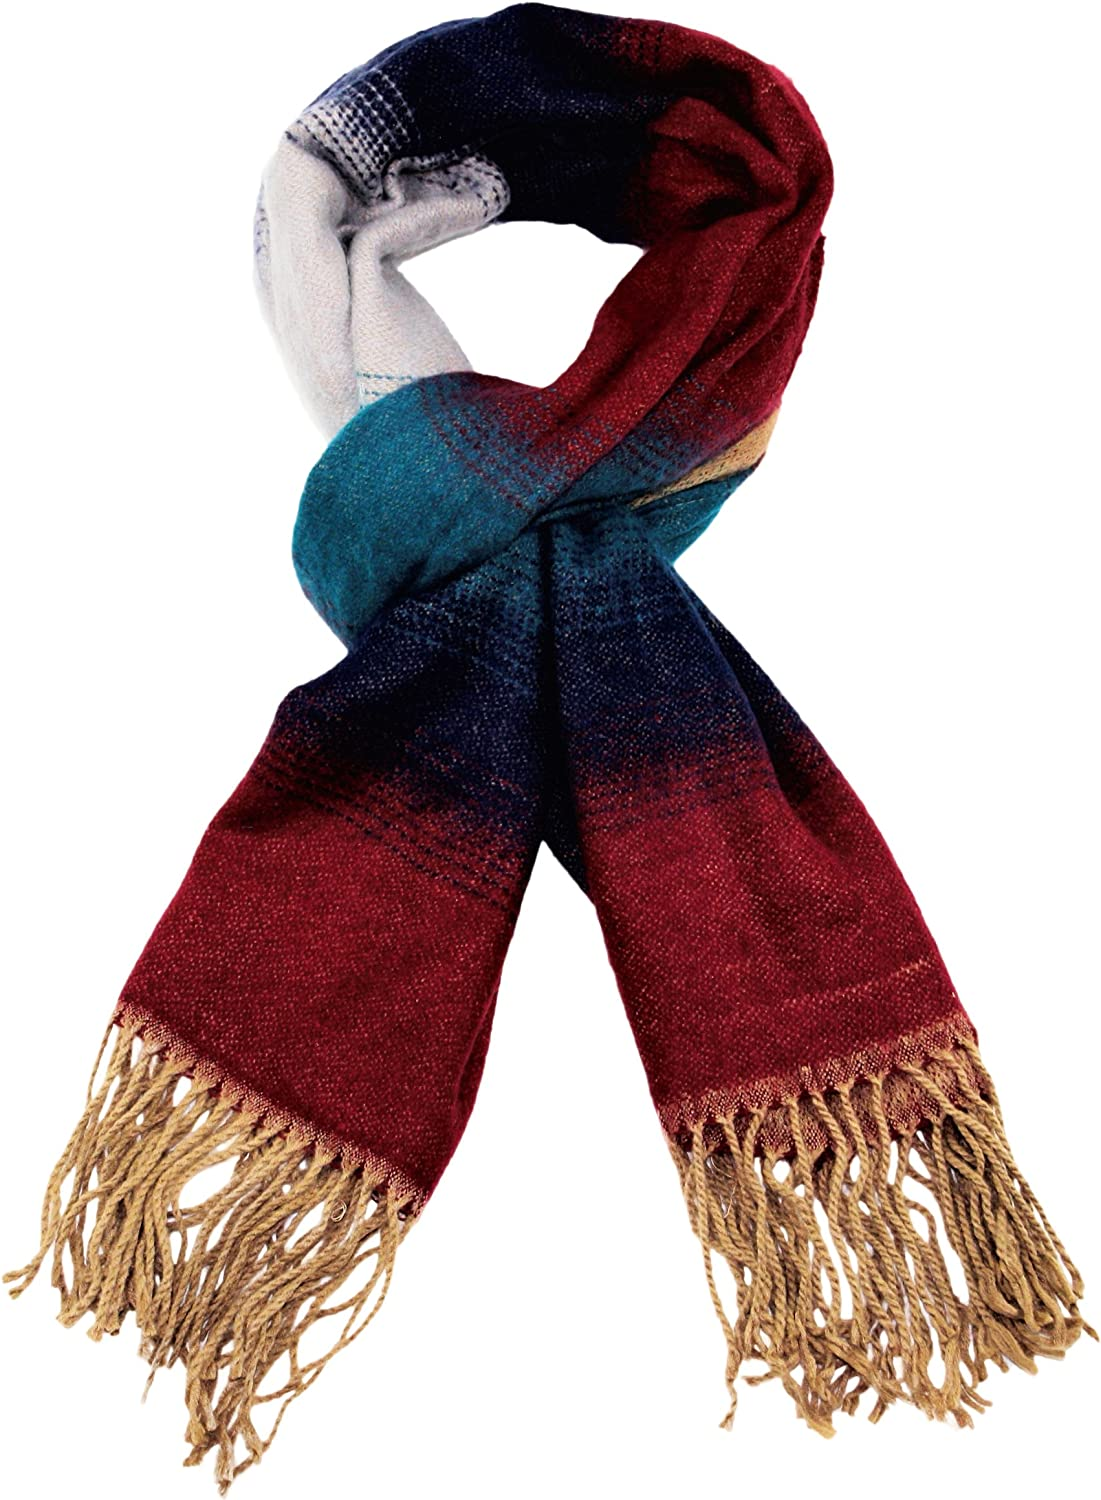 Luxury Super Soft Scarf Faux Cashmere Feel Wrap Gradient Design in Turquoise Purple Burgundy